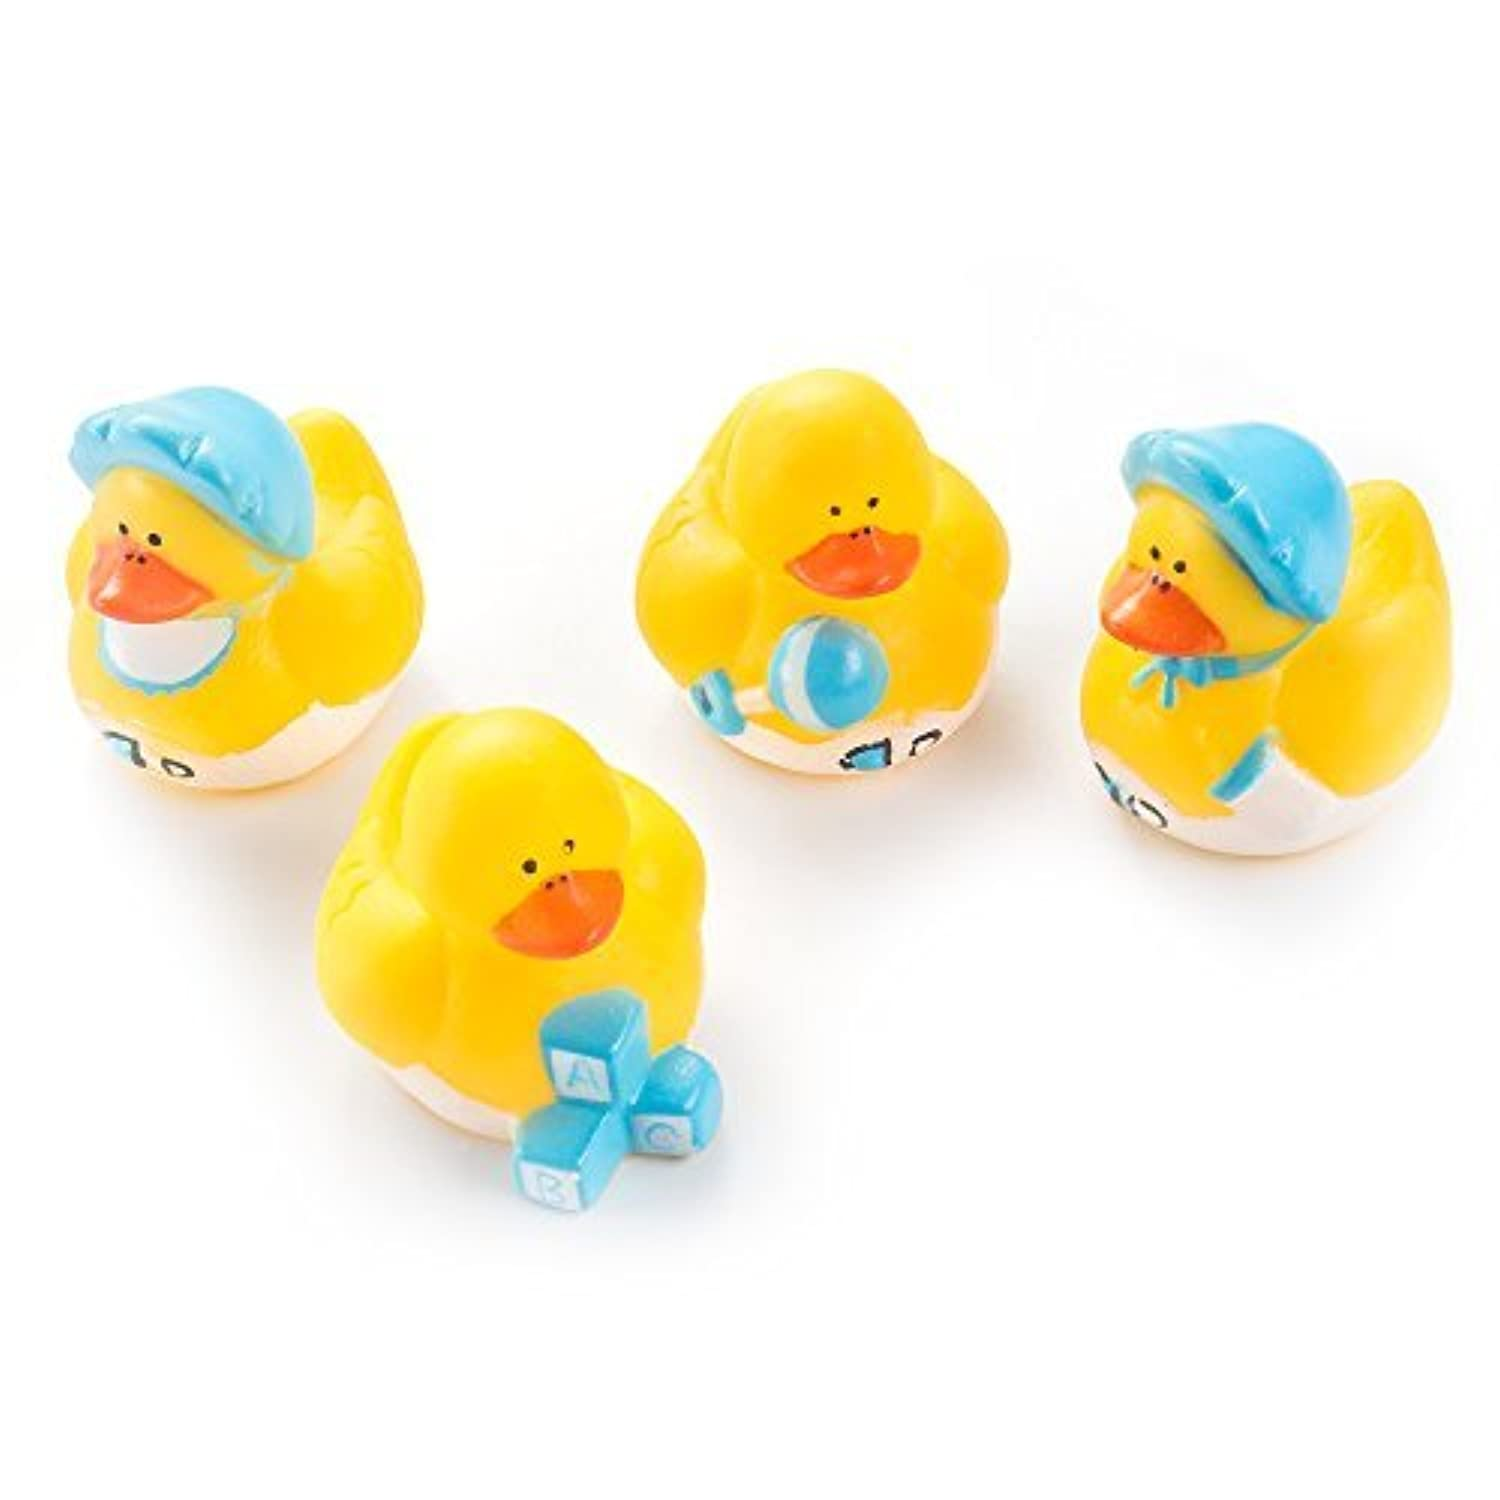 Fun Central AZ981 Baby Shower Rubber Duck - 24 ct [並行輸入品]